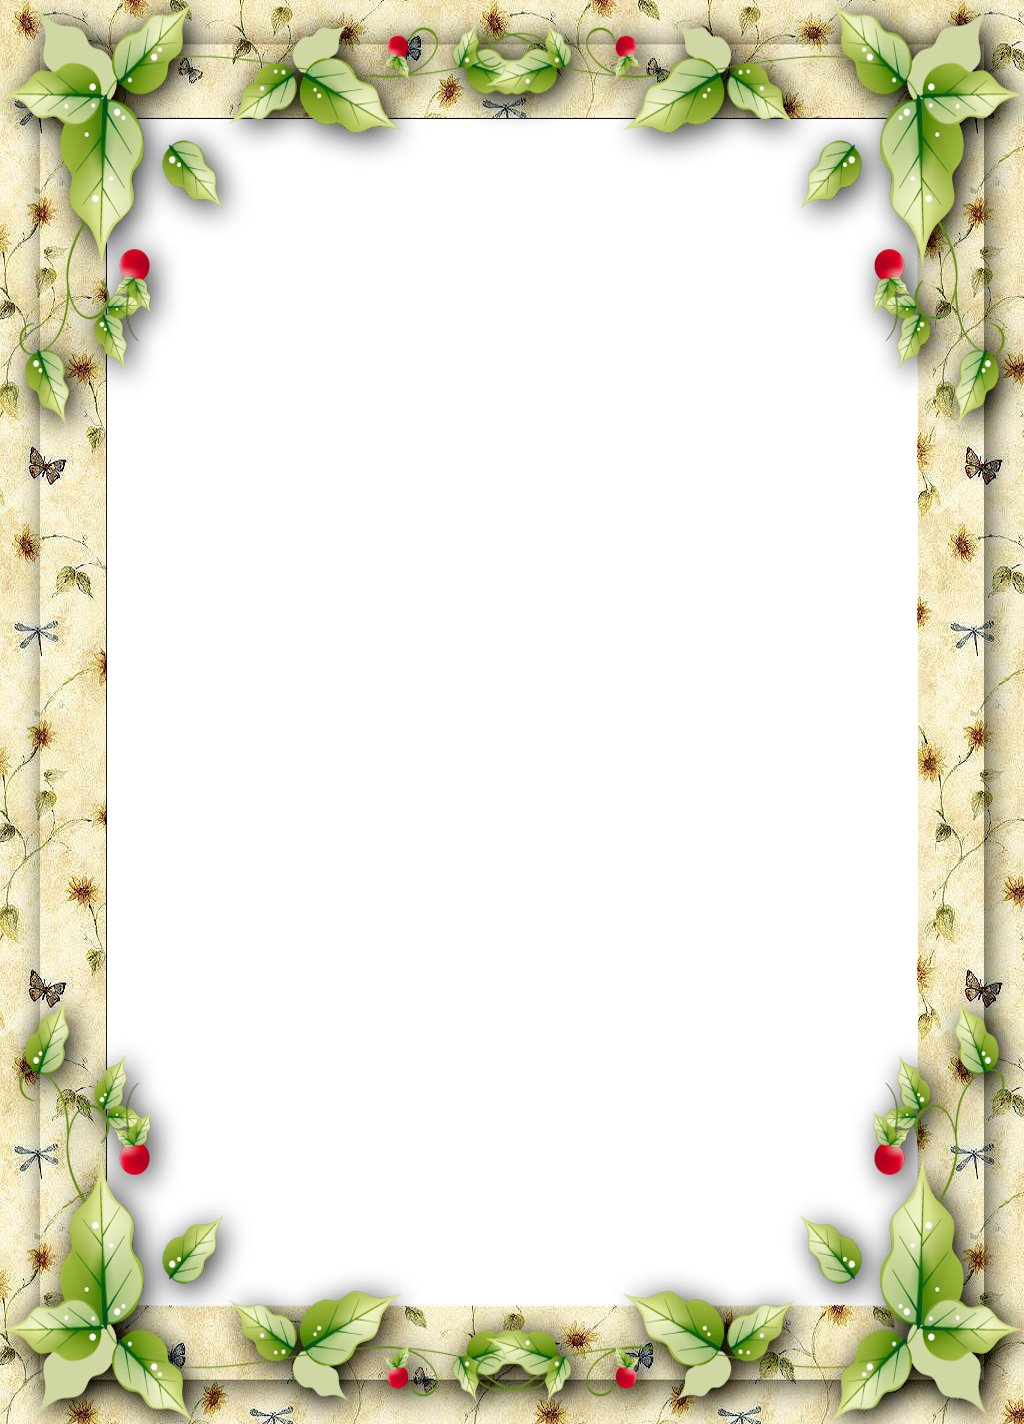 vector freeuse download Religious easter border clipart. Christmas frame with mistletoe